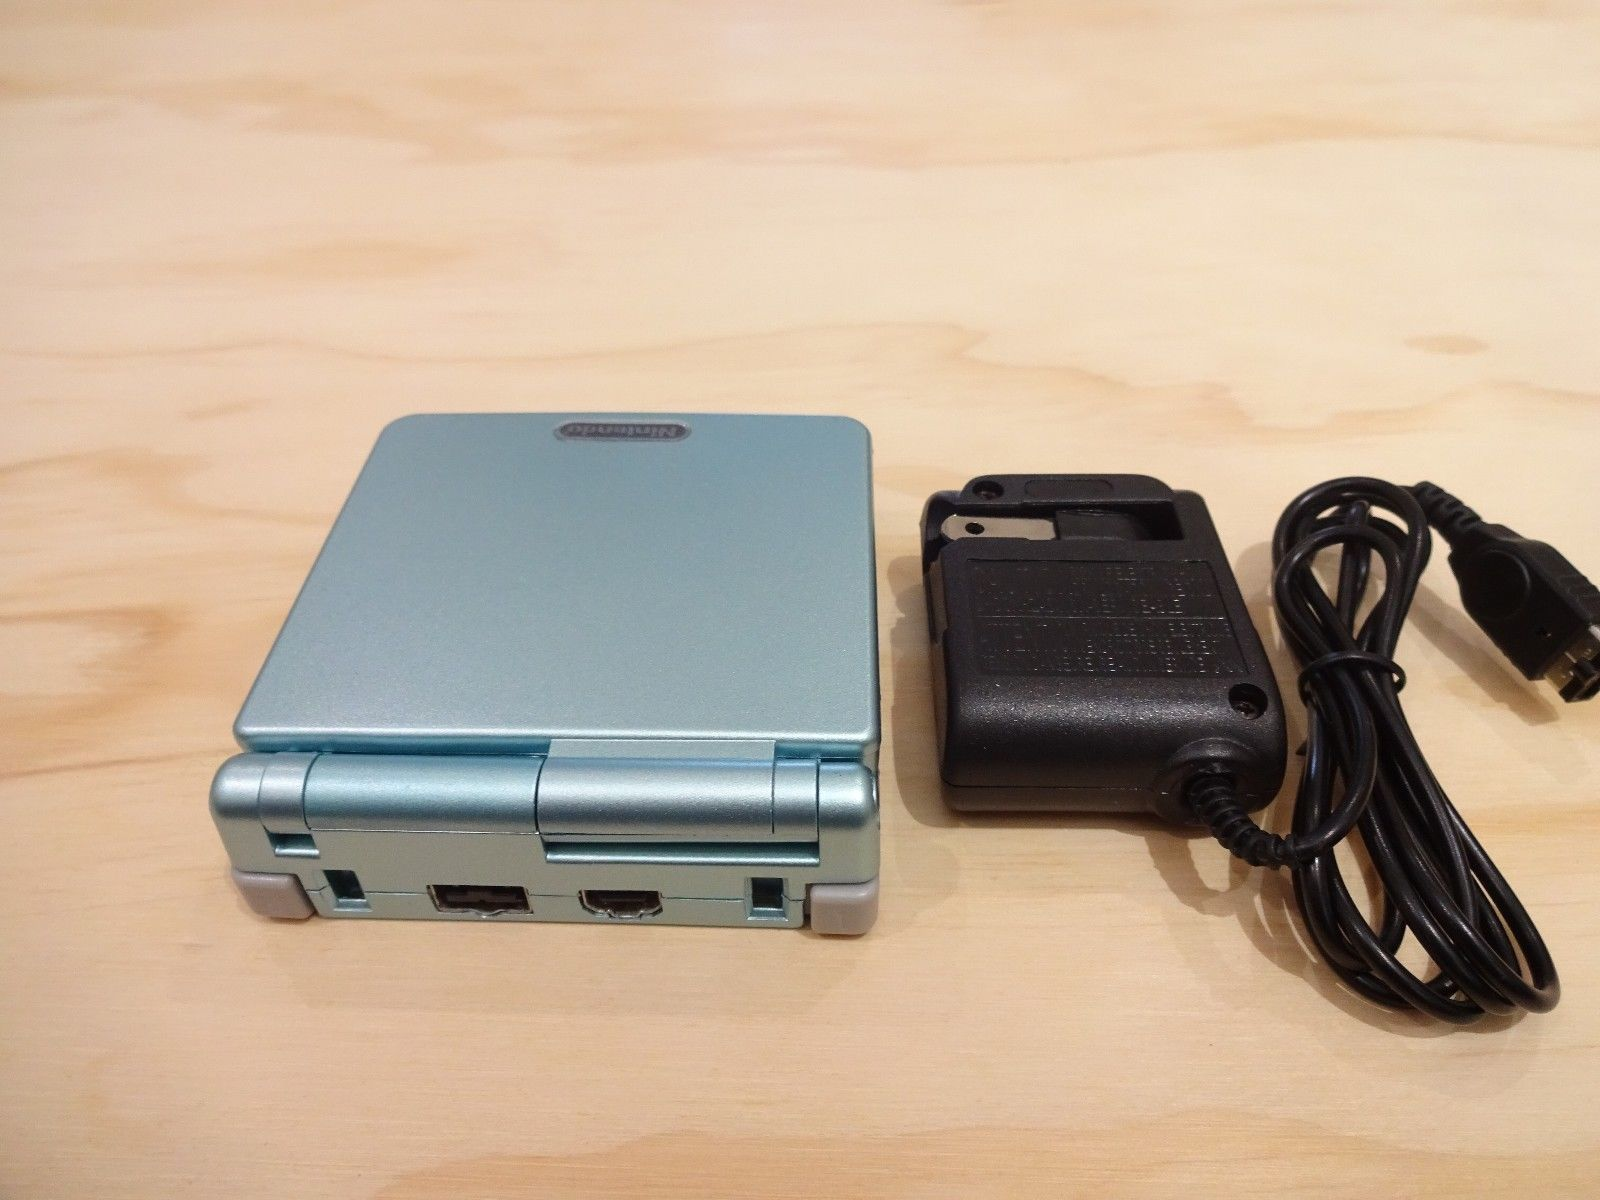 Nintendo Game Boy Advance GBA SP Pearl Blue System AGS 101 Brighter MINT NEW